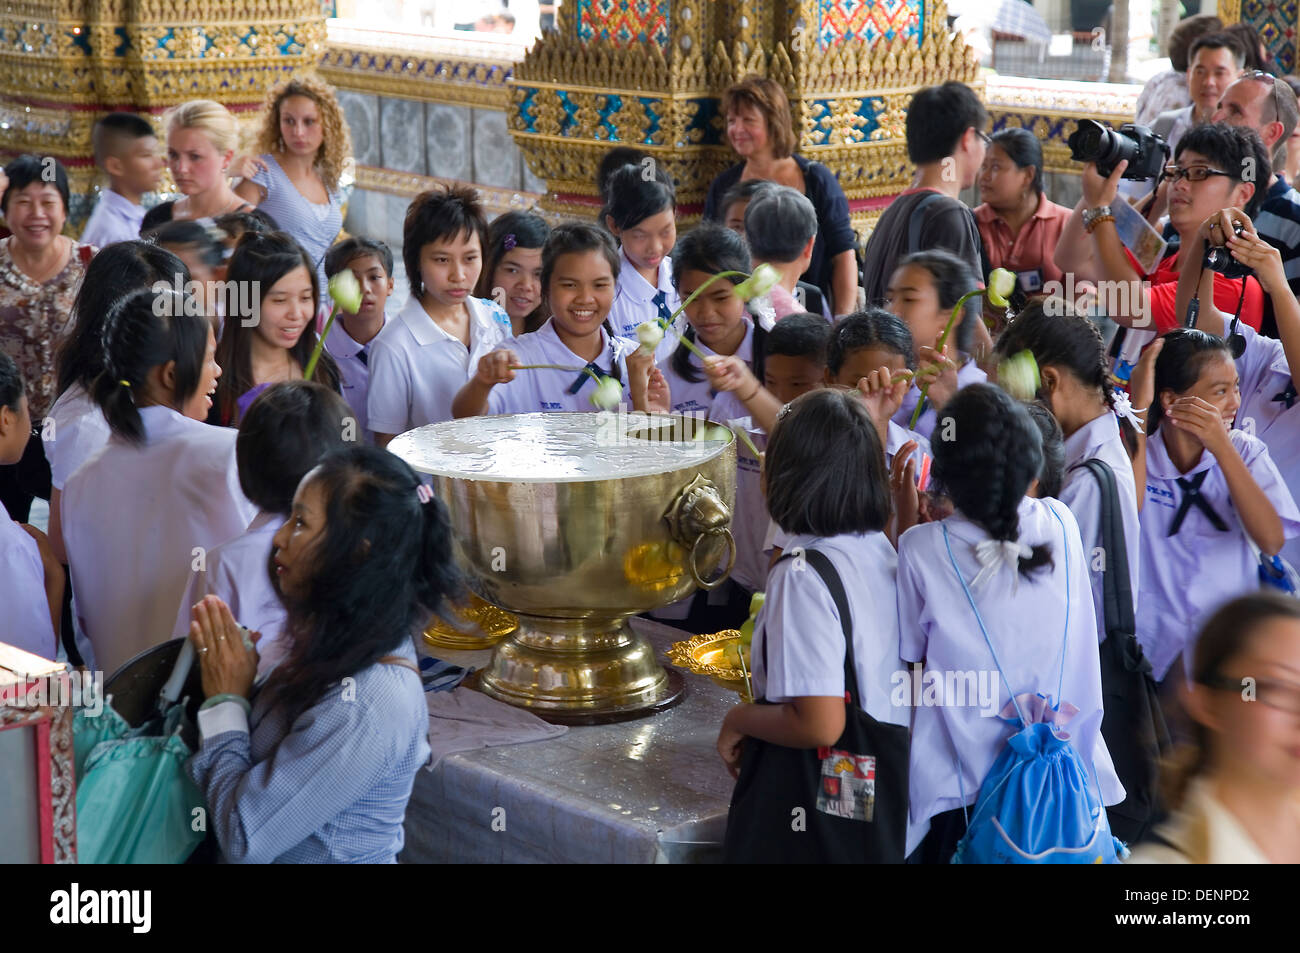 Believers outside the Ubosoth. Wat Phra Kaew, or Temple of the Emerald Buddha. Grand Palace. Bangkok, Thailand, Asia. - Stock Image